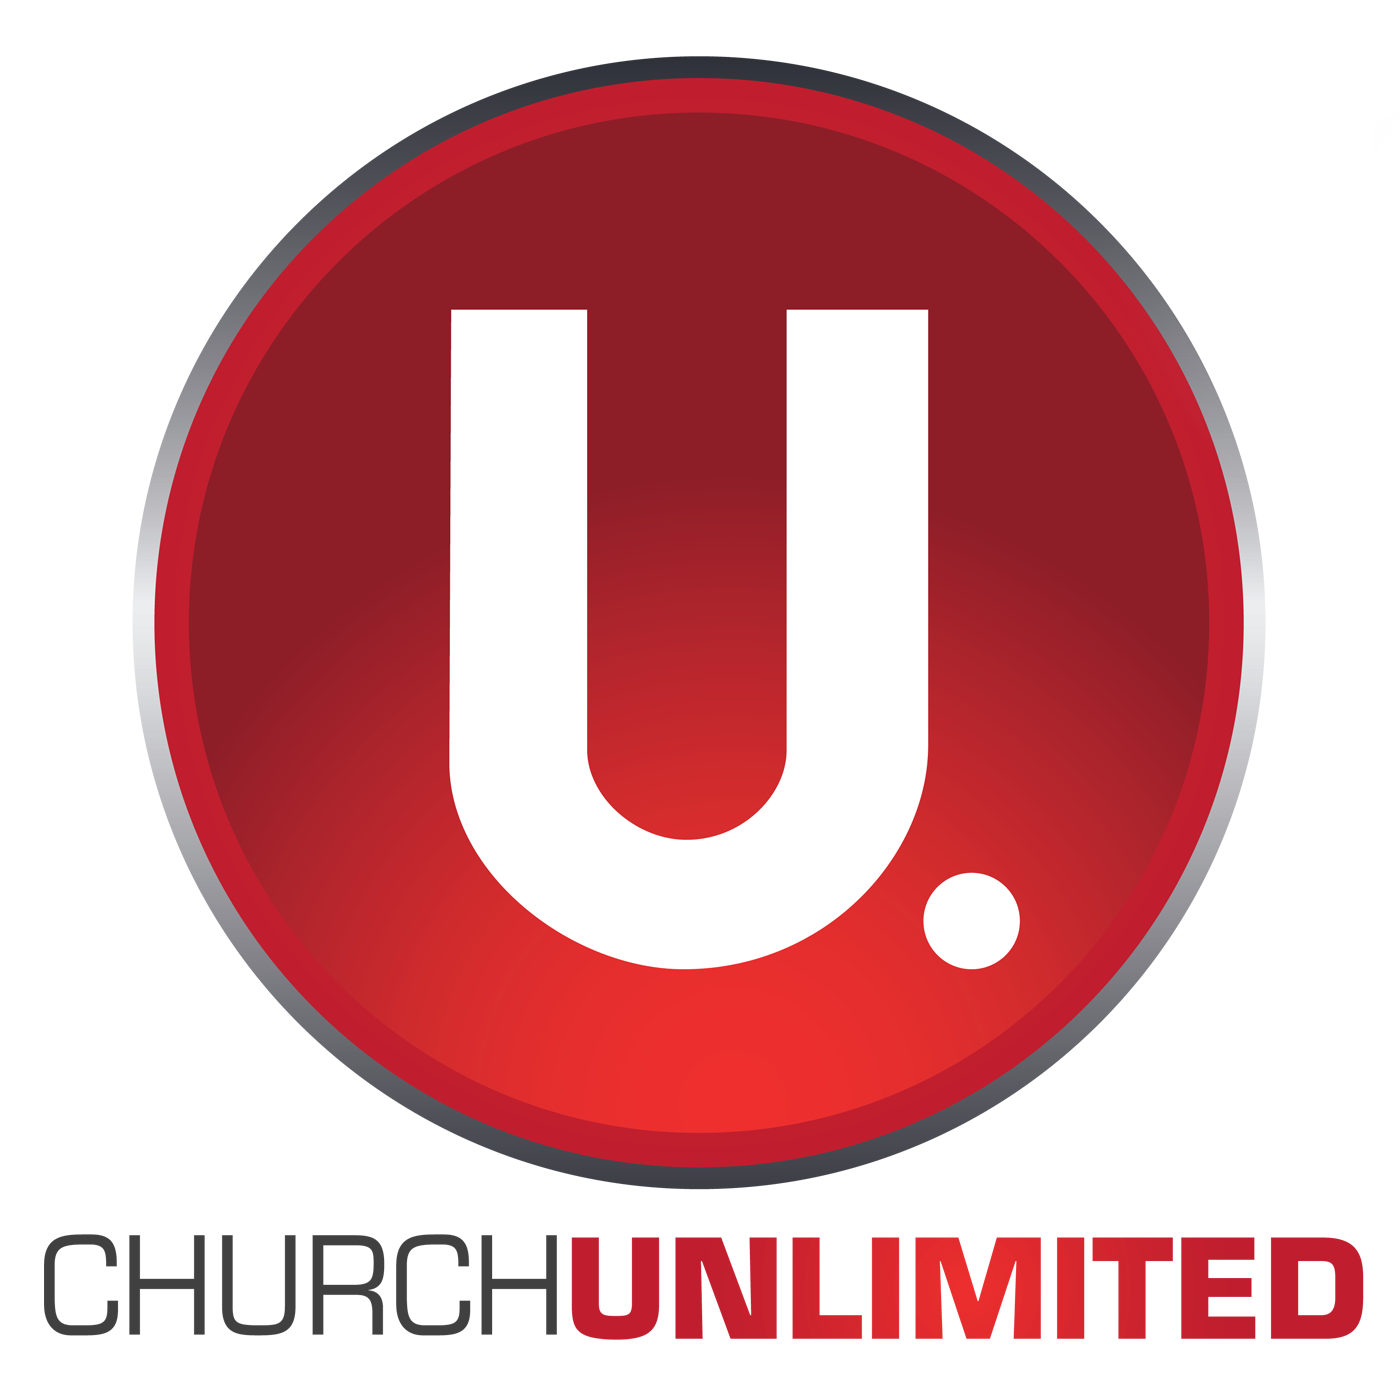 Church Unlimited by Church Unlimited on Apple Podcasts